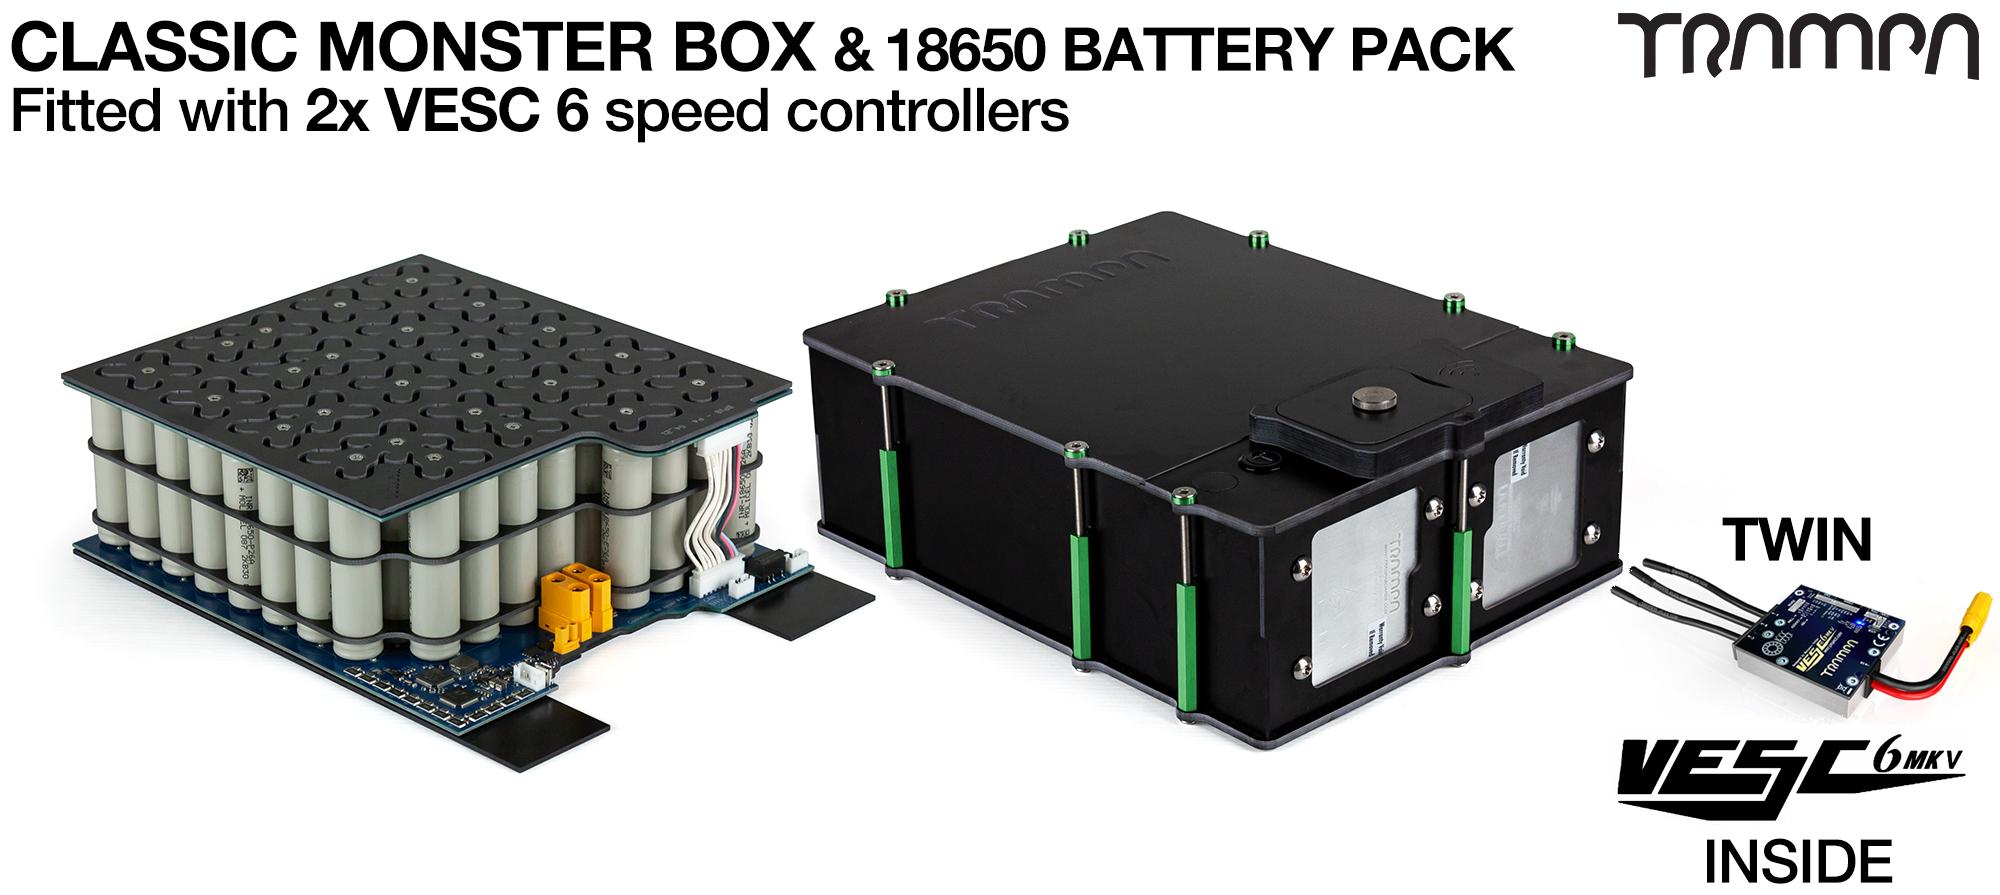 MONSTER BOX with space for TWIN Internal VESC, Made specifically to work in conjunction with TRAMPA's Electric Deck MkII